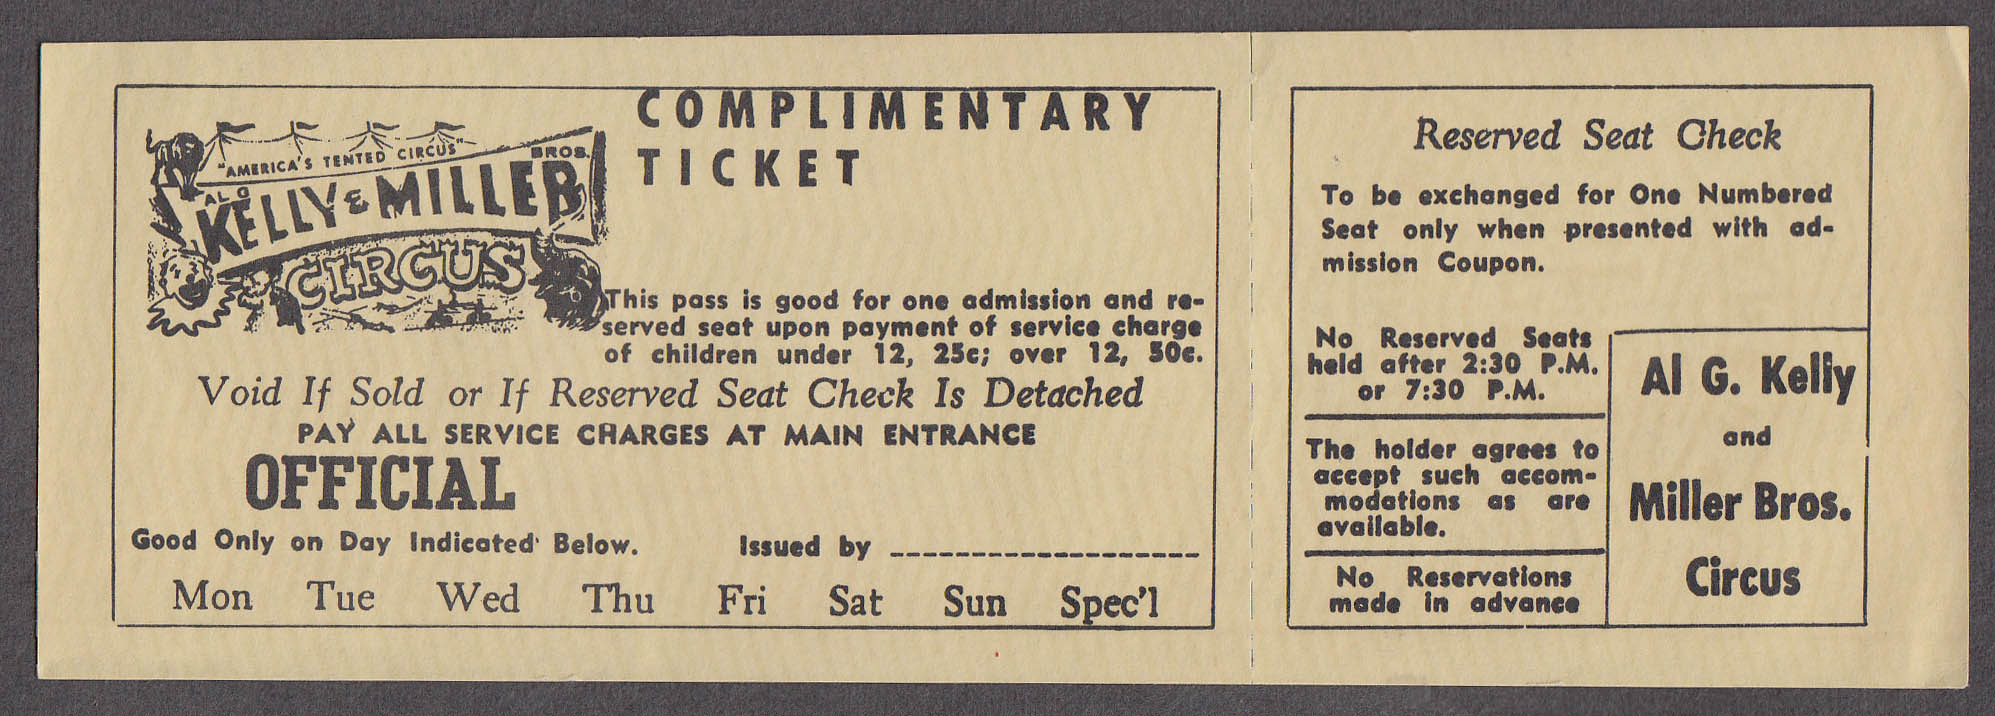 Al G Kelly & Miller Bros circus ticket Complimentary Reserved Seat Check undated